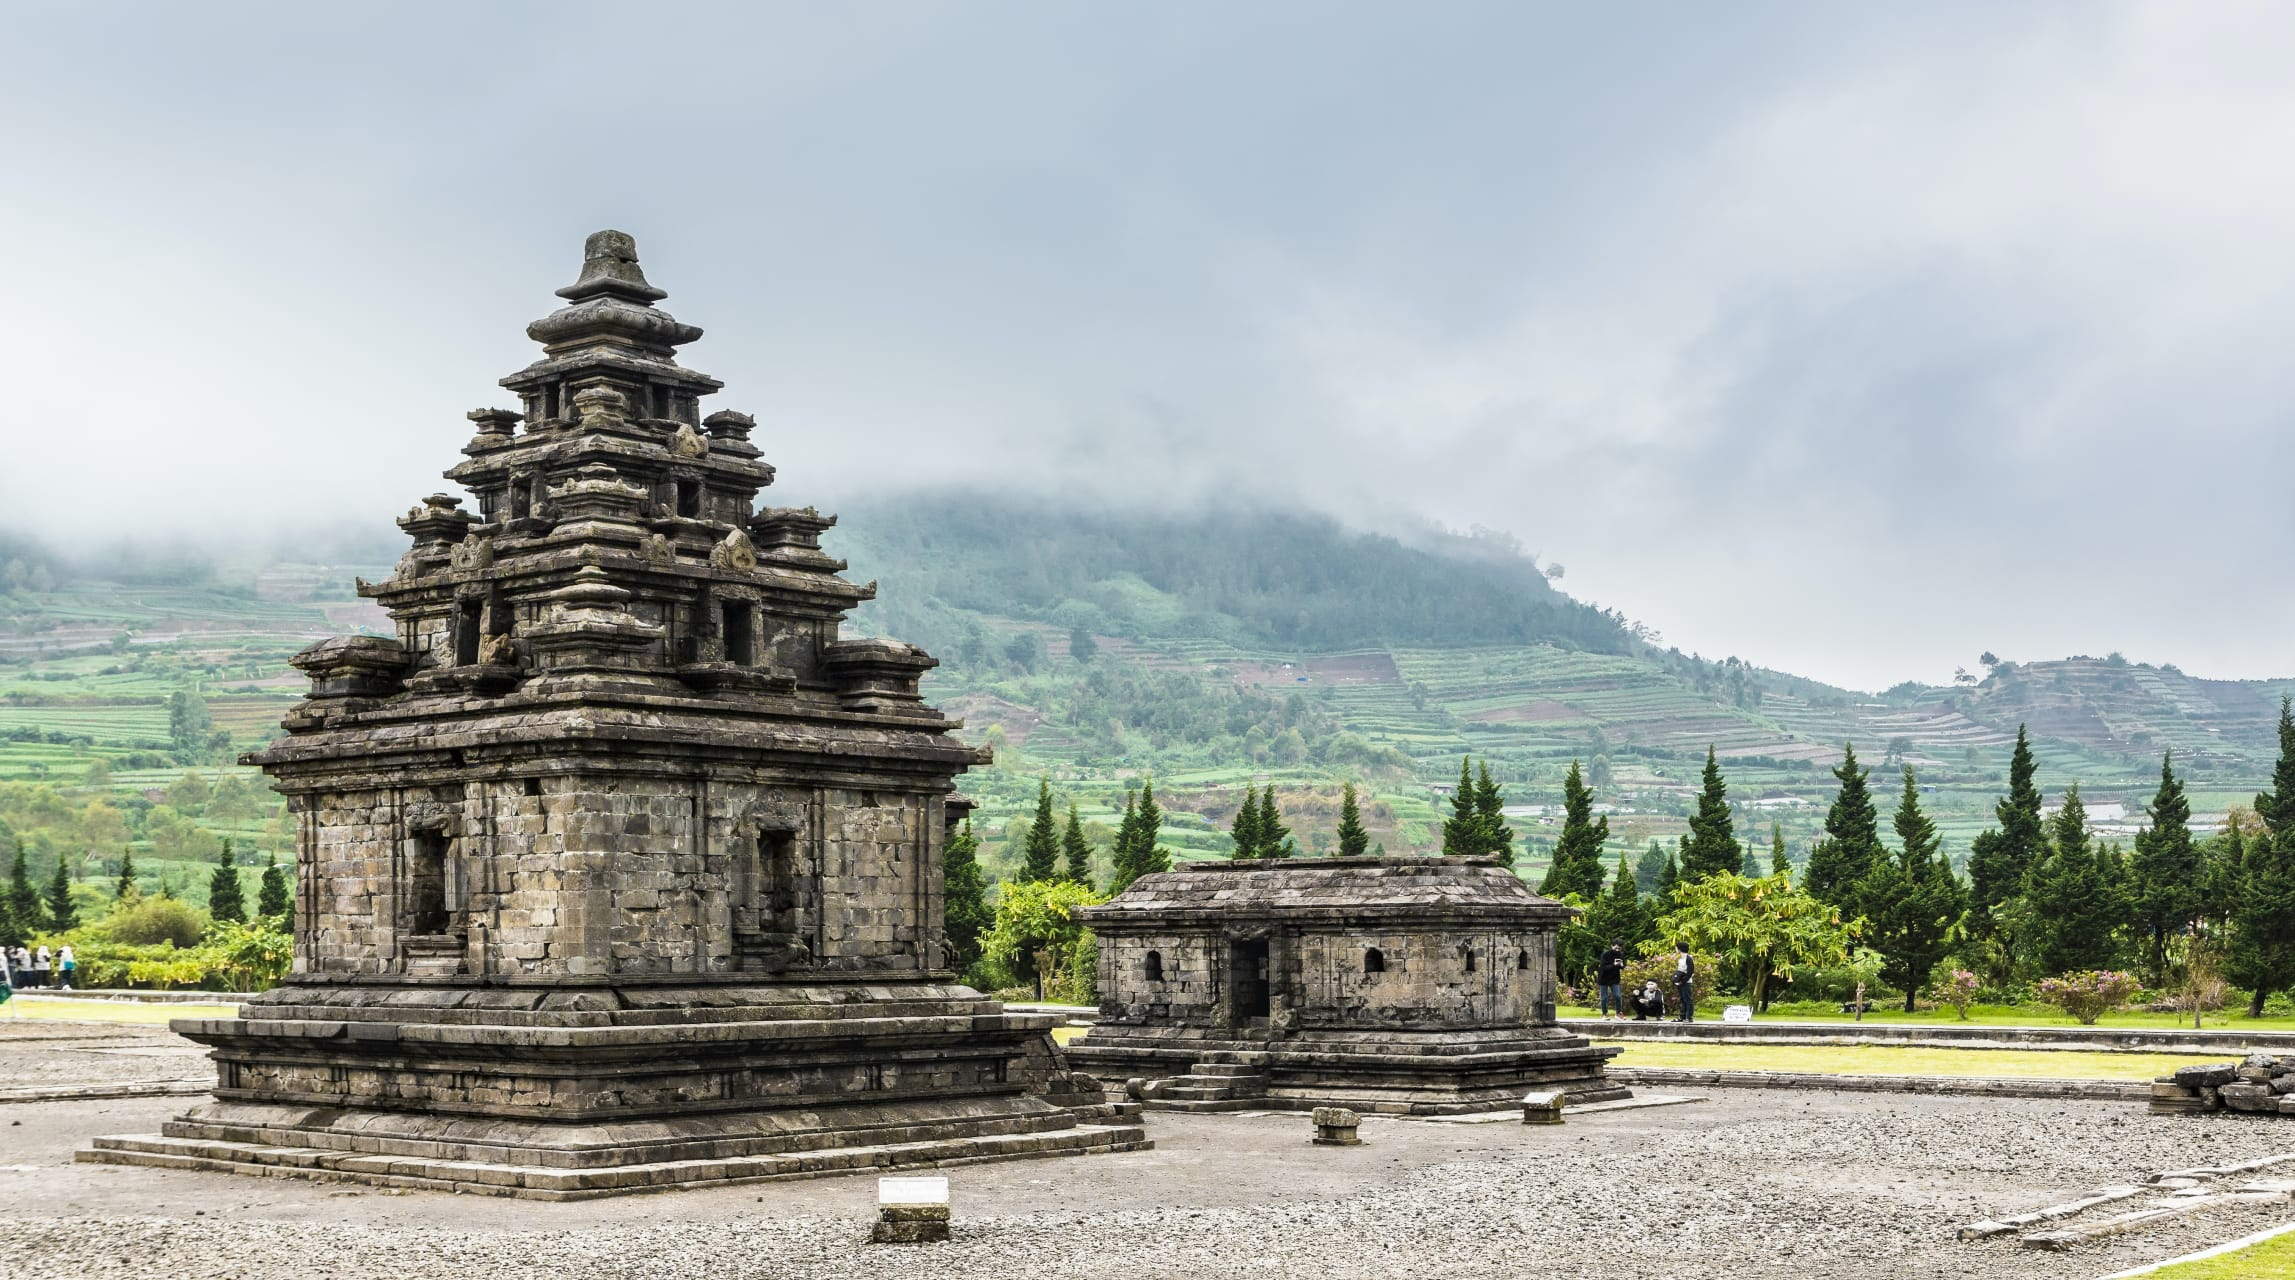 Wonosobo - Dieng Plateau : the Land of the Gods